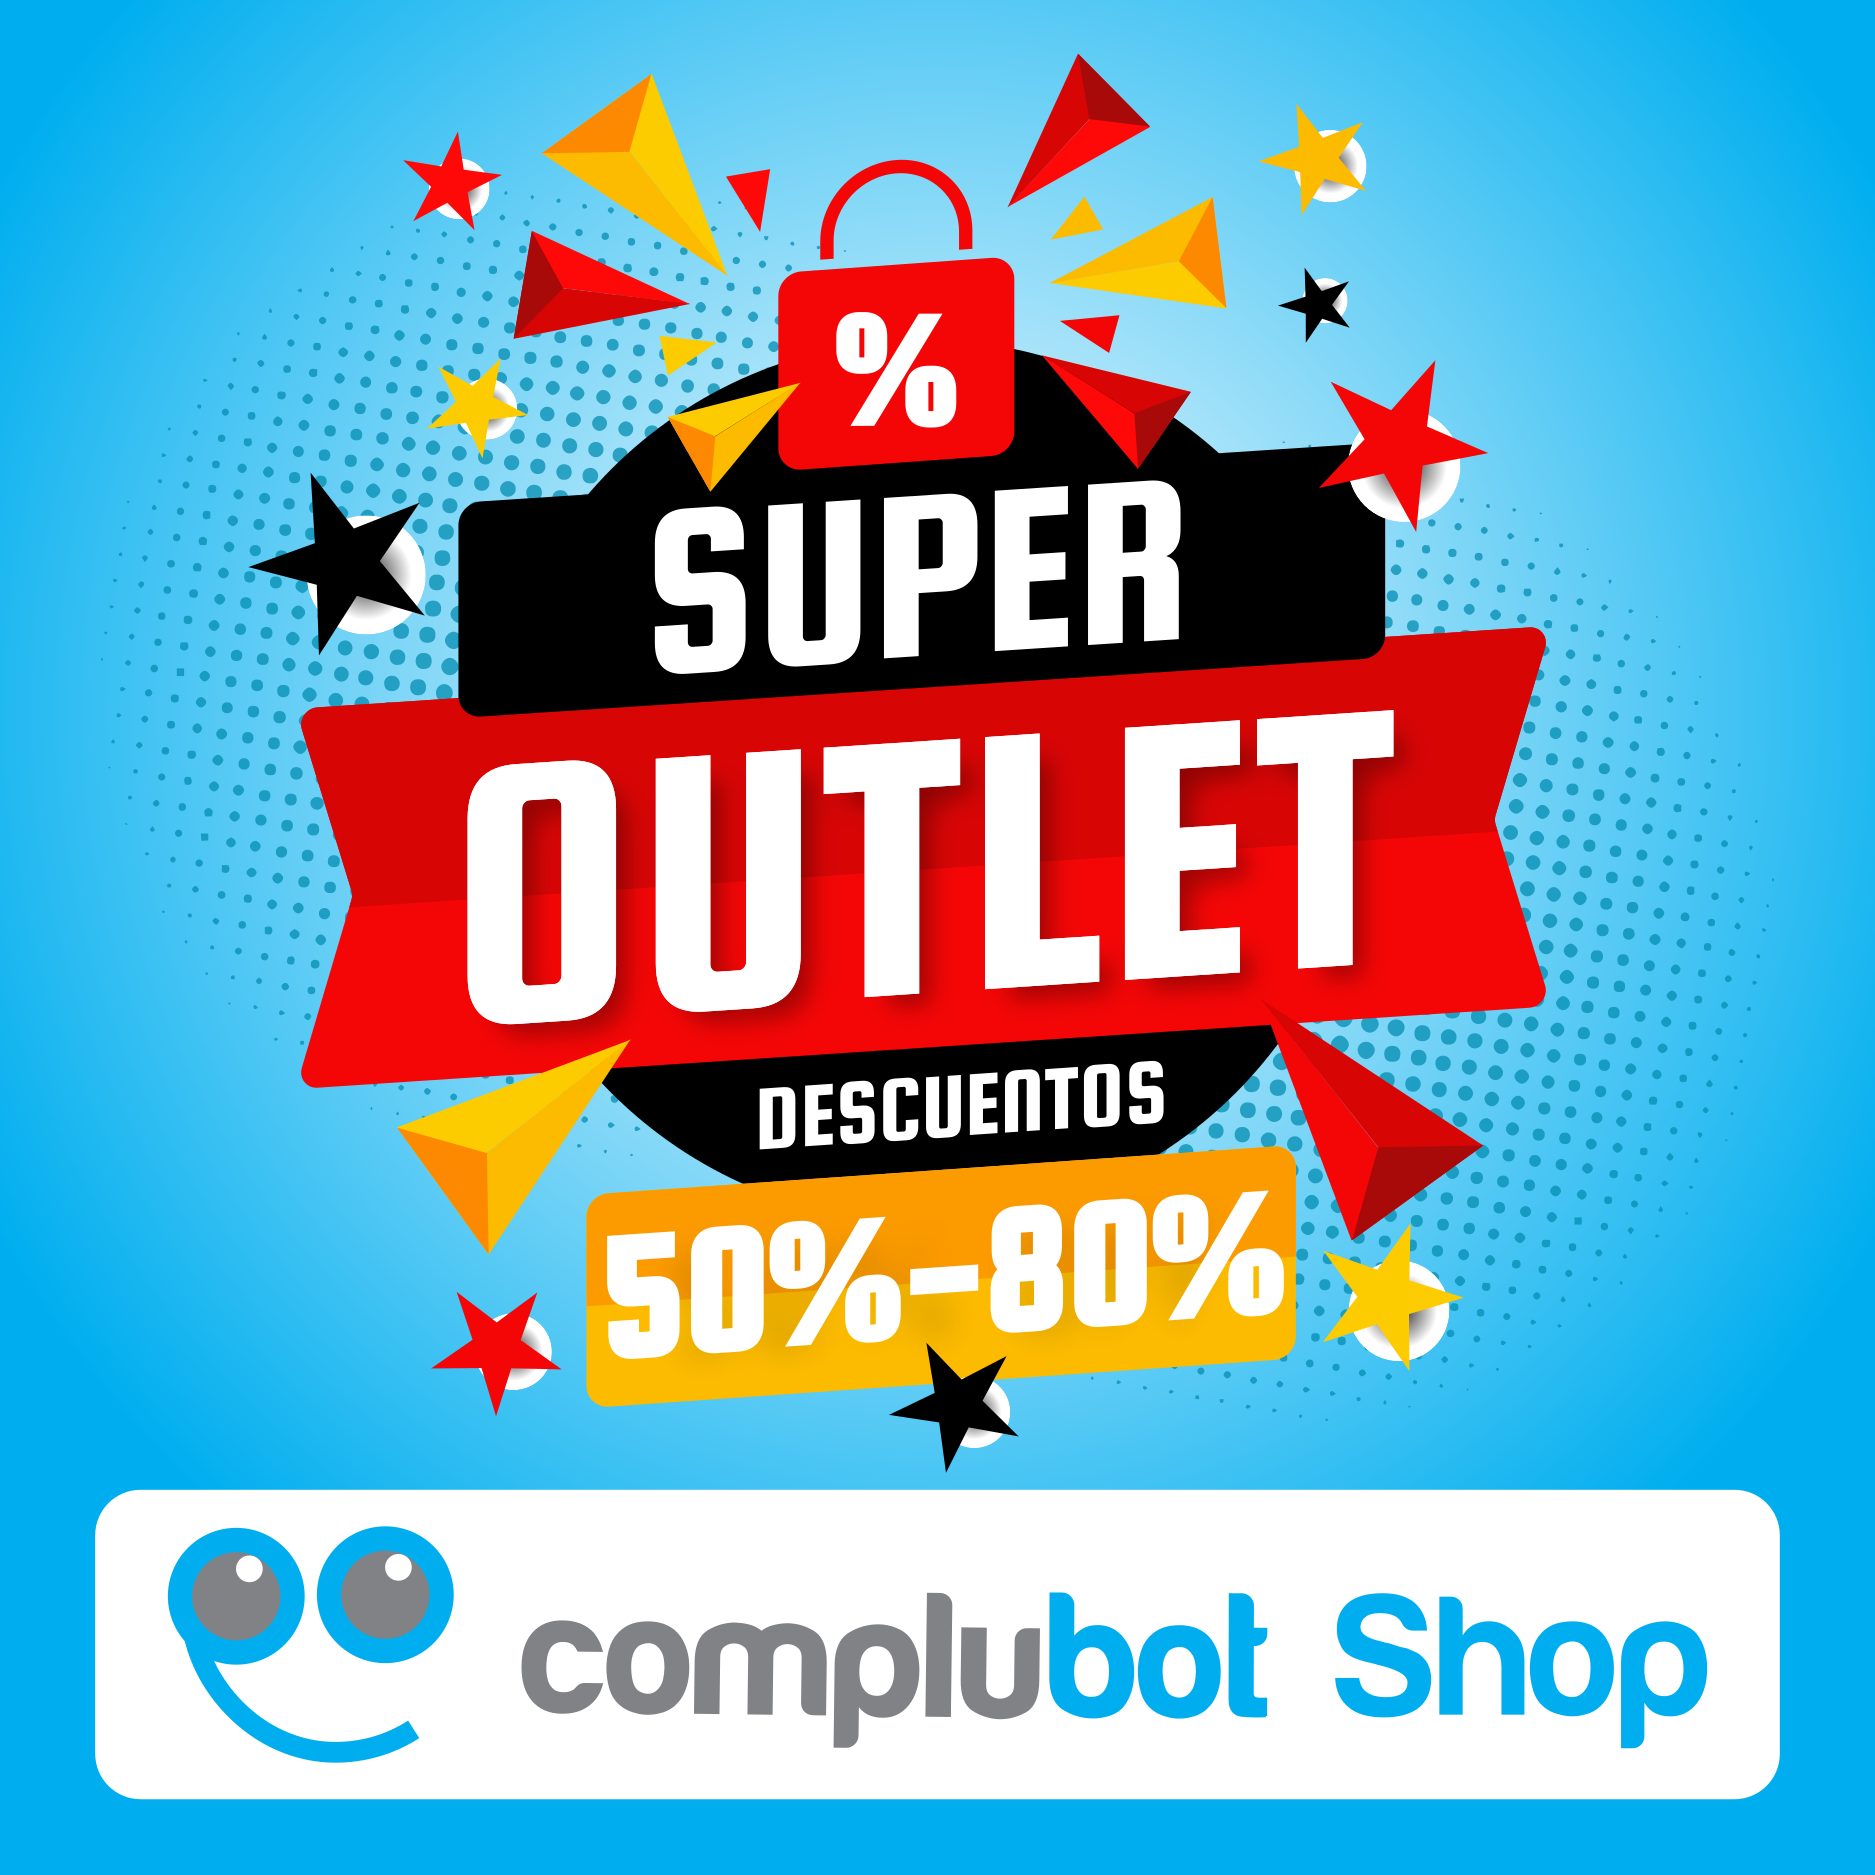 Super Outlet